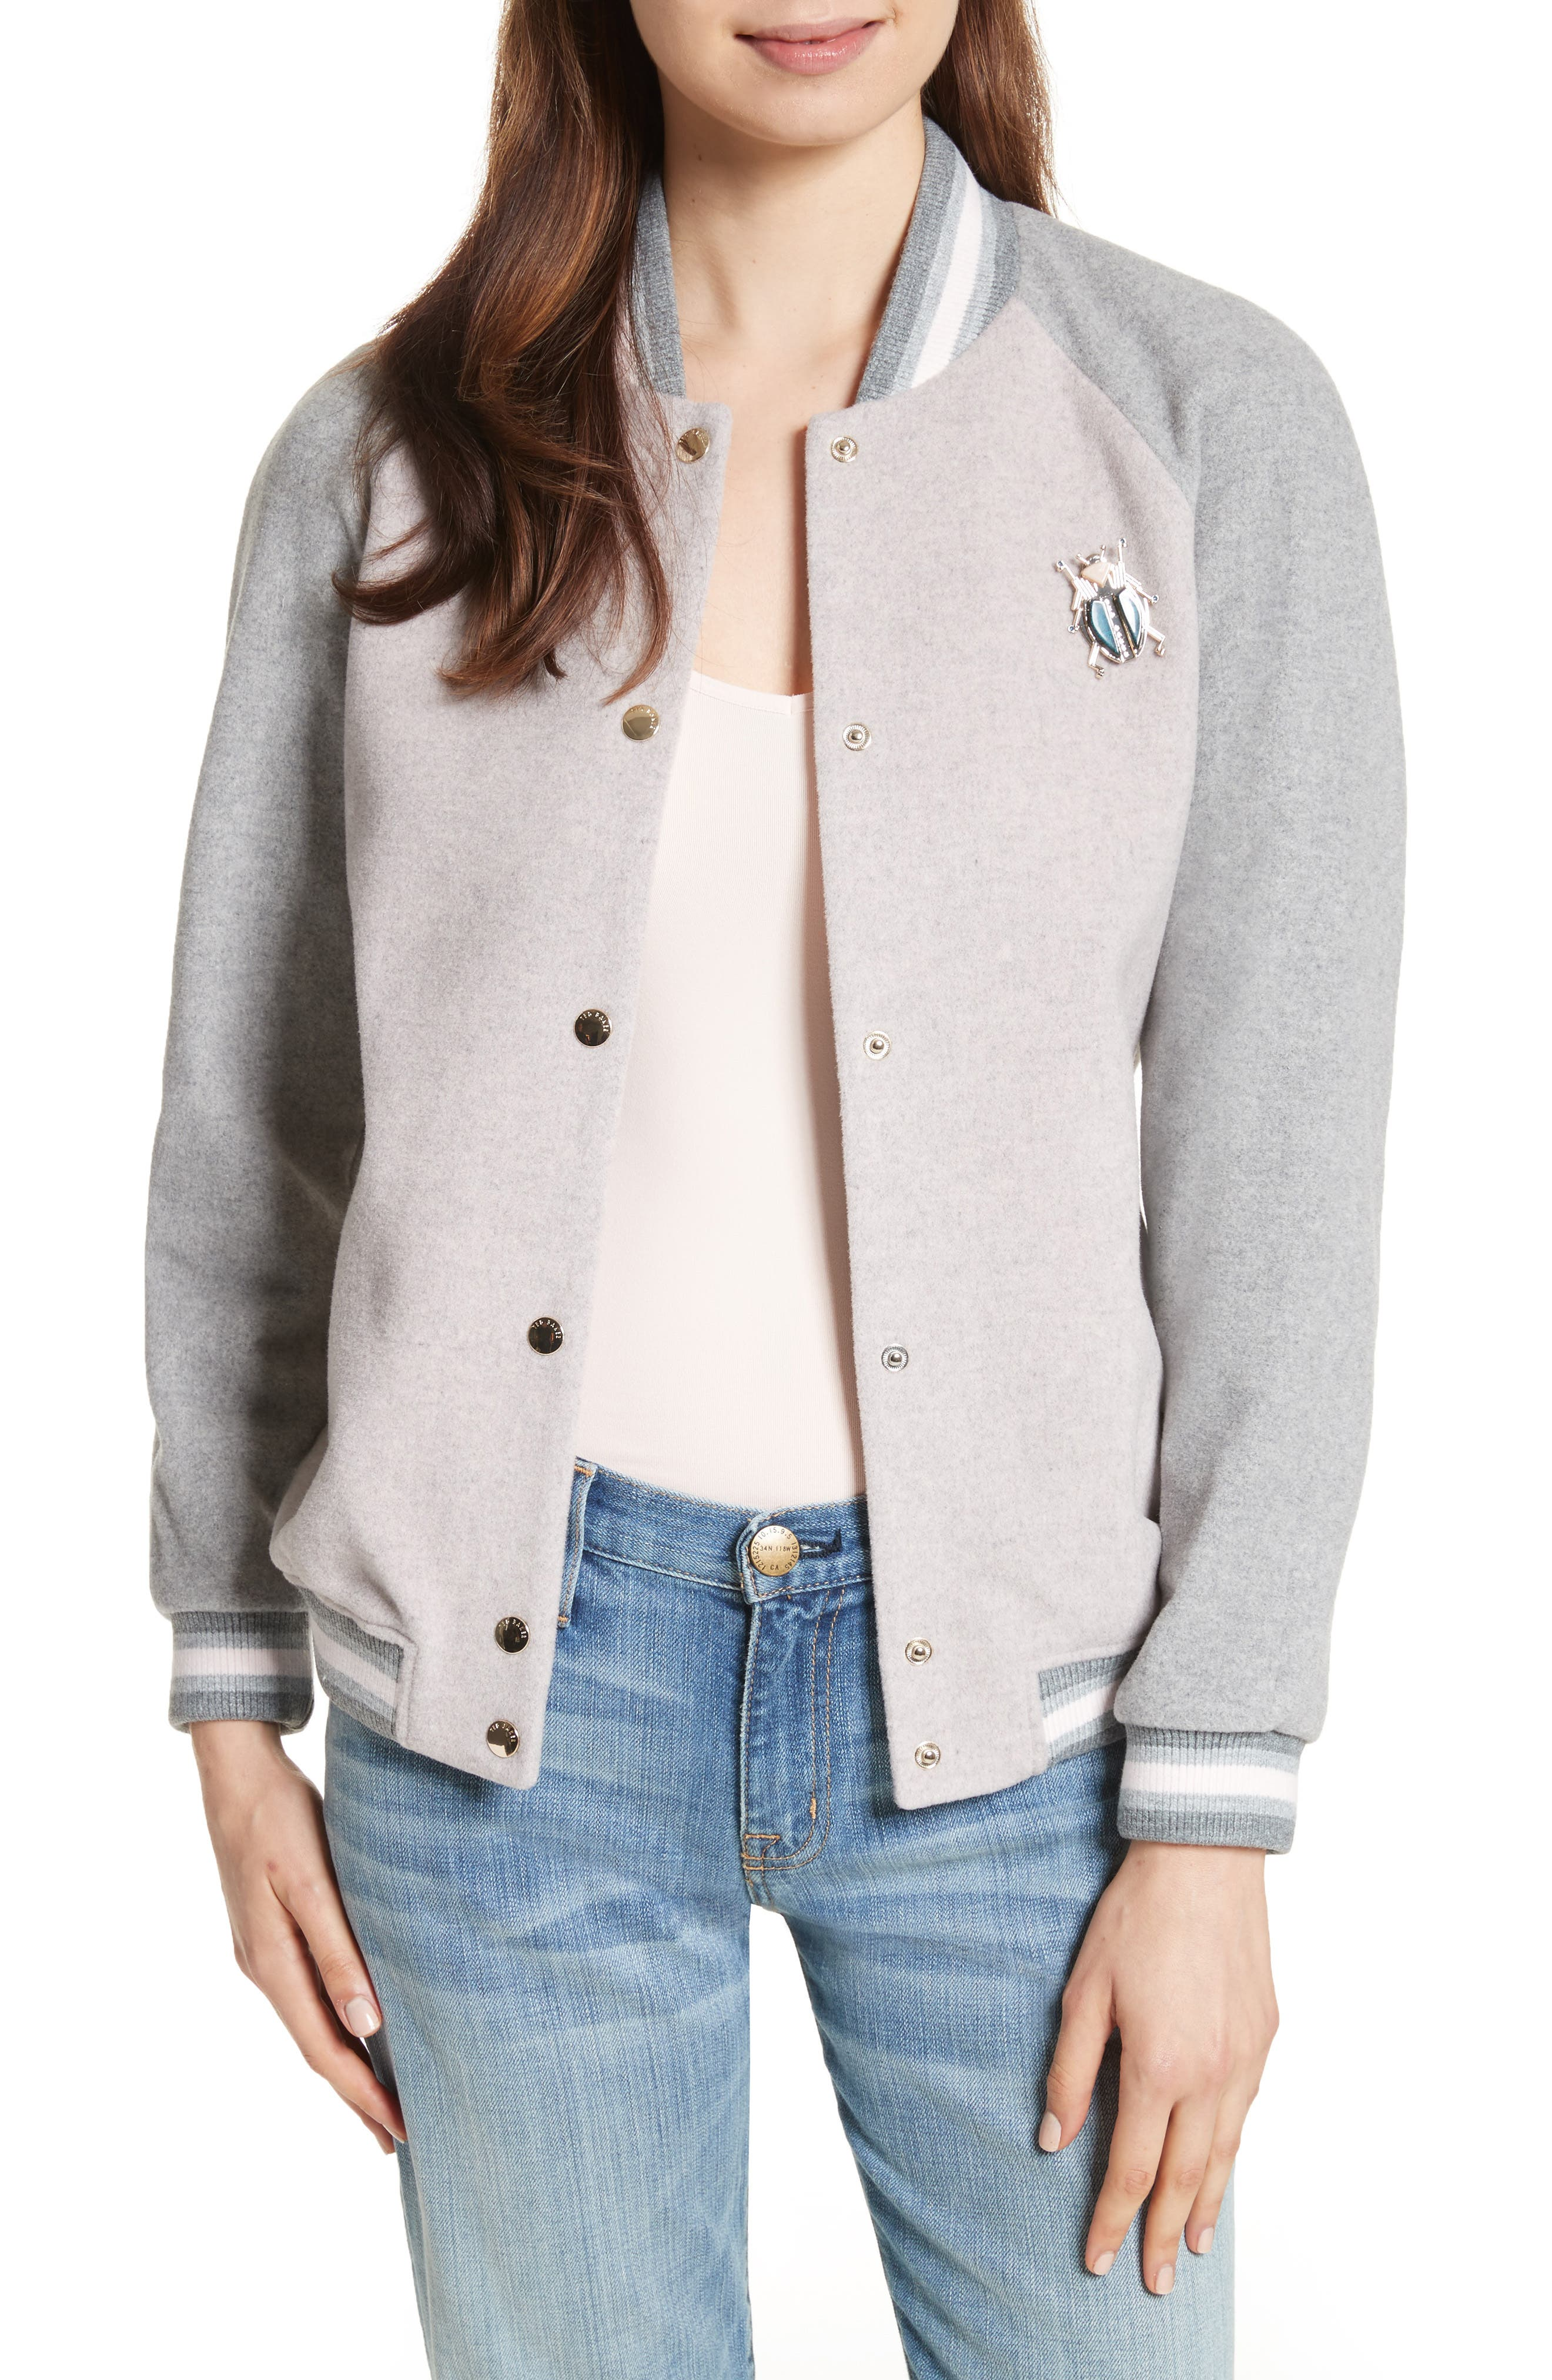 Augusta Embellished Bomber Jacket,                         Main,                         color, 652